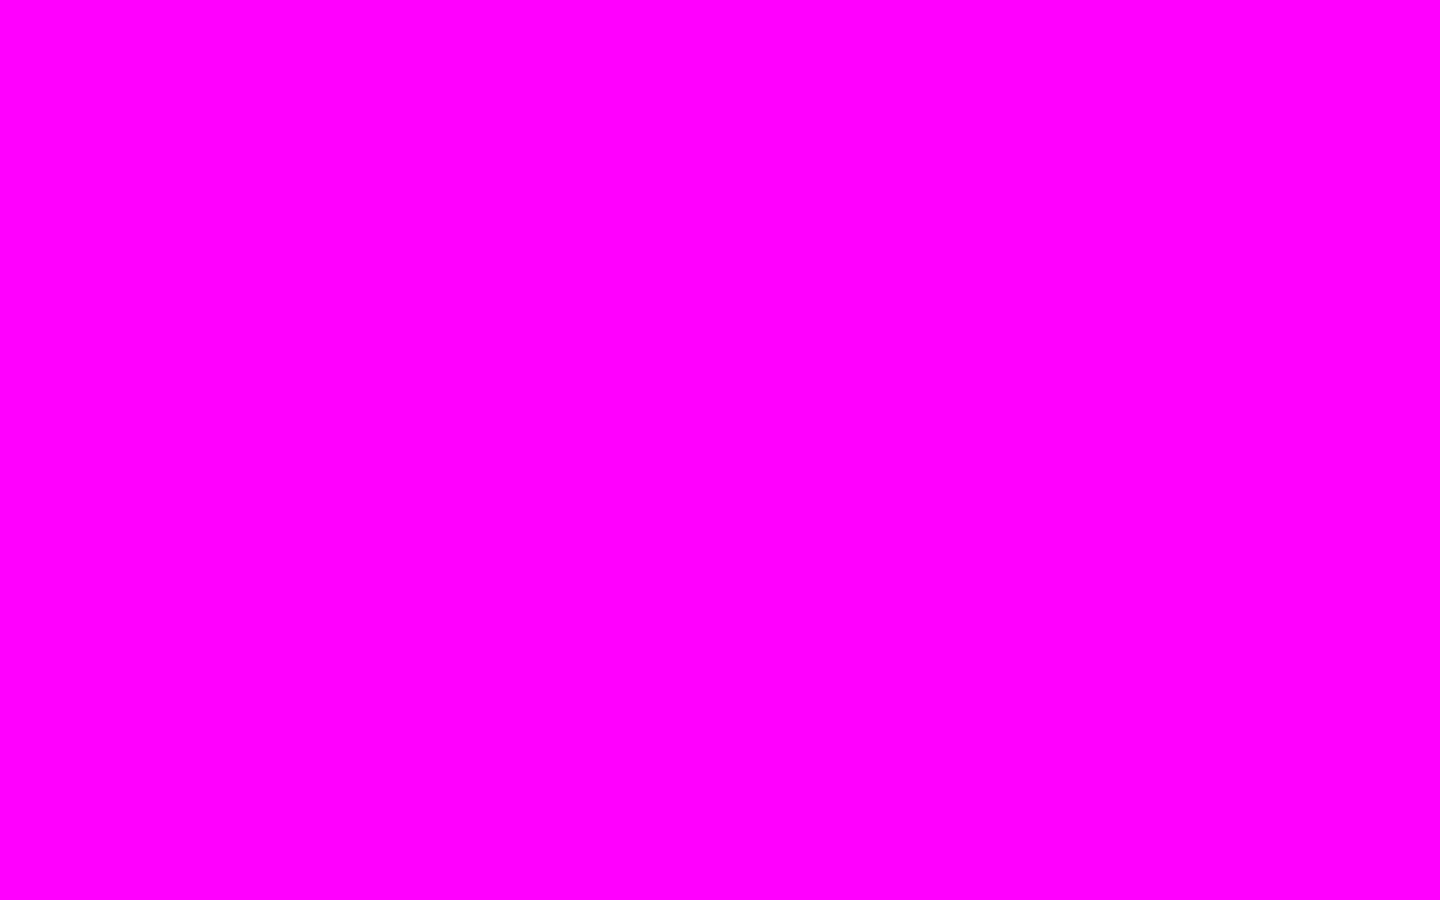 1440x900 Fuchsia Solid Color Background